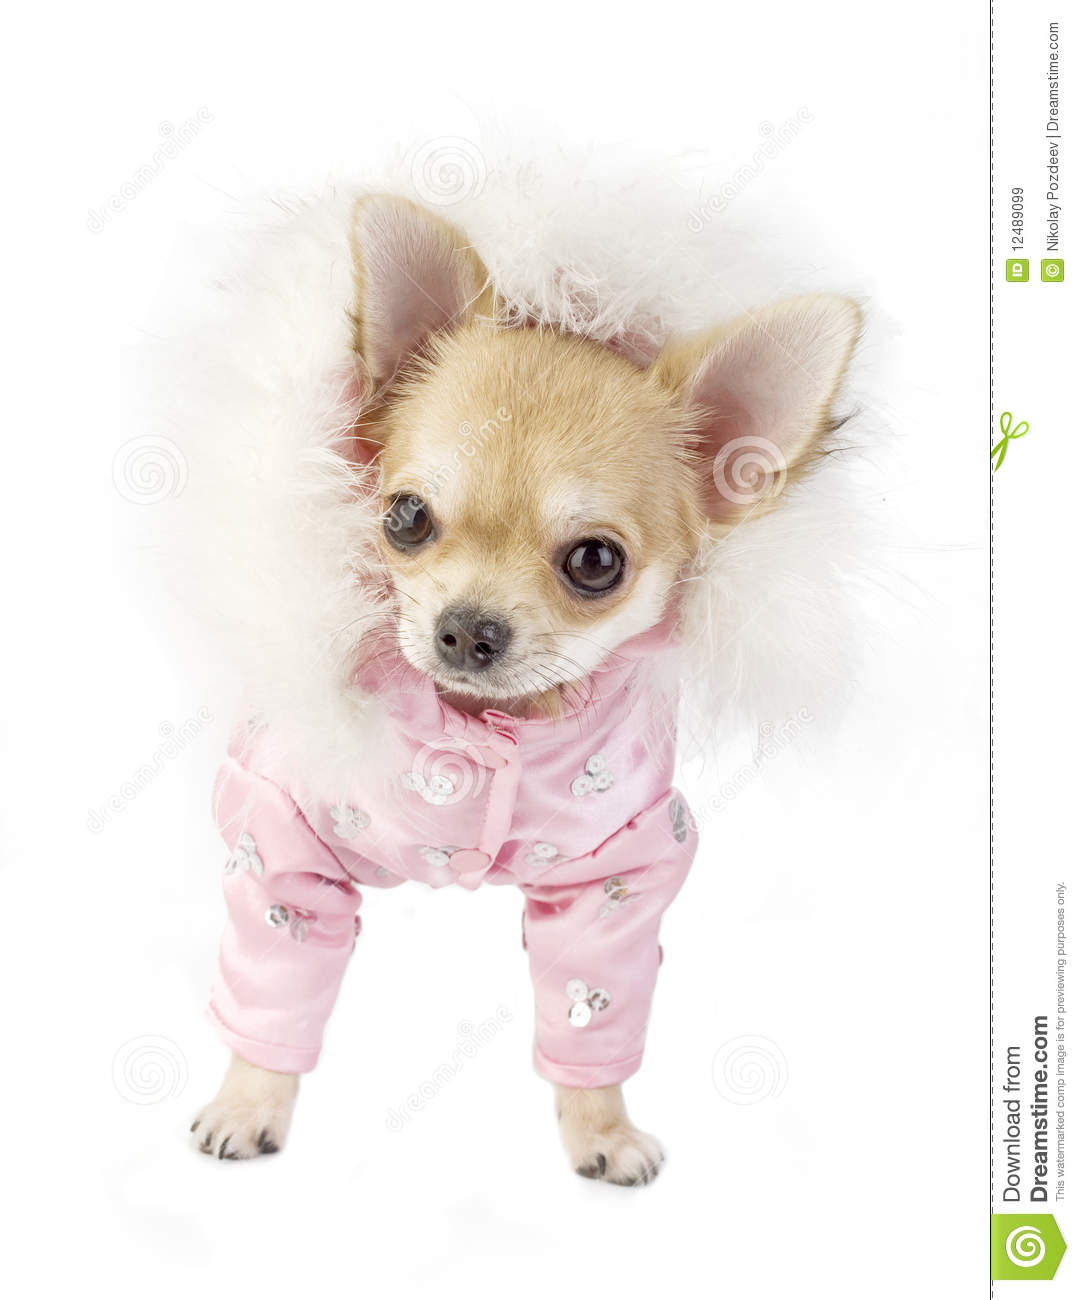 Cute Chihuahua Puppy Glamorous Dressed Stock Image Image